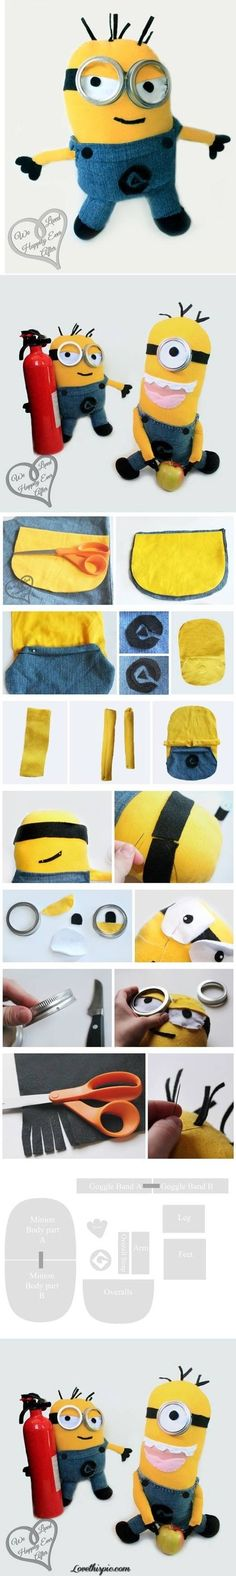 DIY Despicable Me Dolls Pictures, Photos, and Images for Facebook, Tumblr, Pinterest, and Twitter